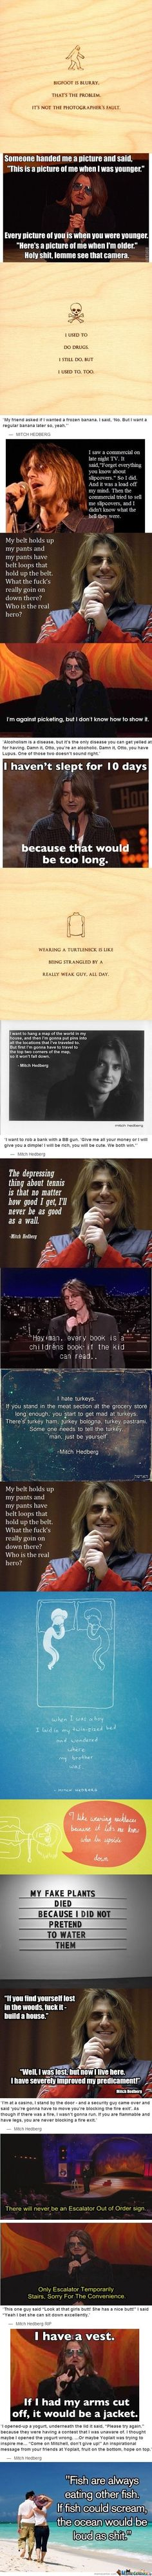 Mitch Hedberg was so cleverly funny.